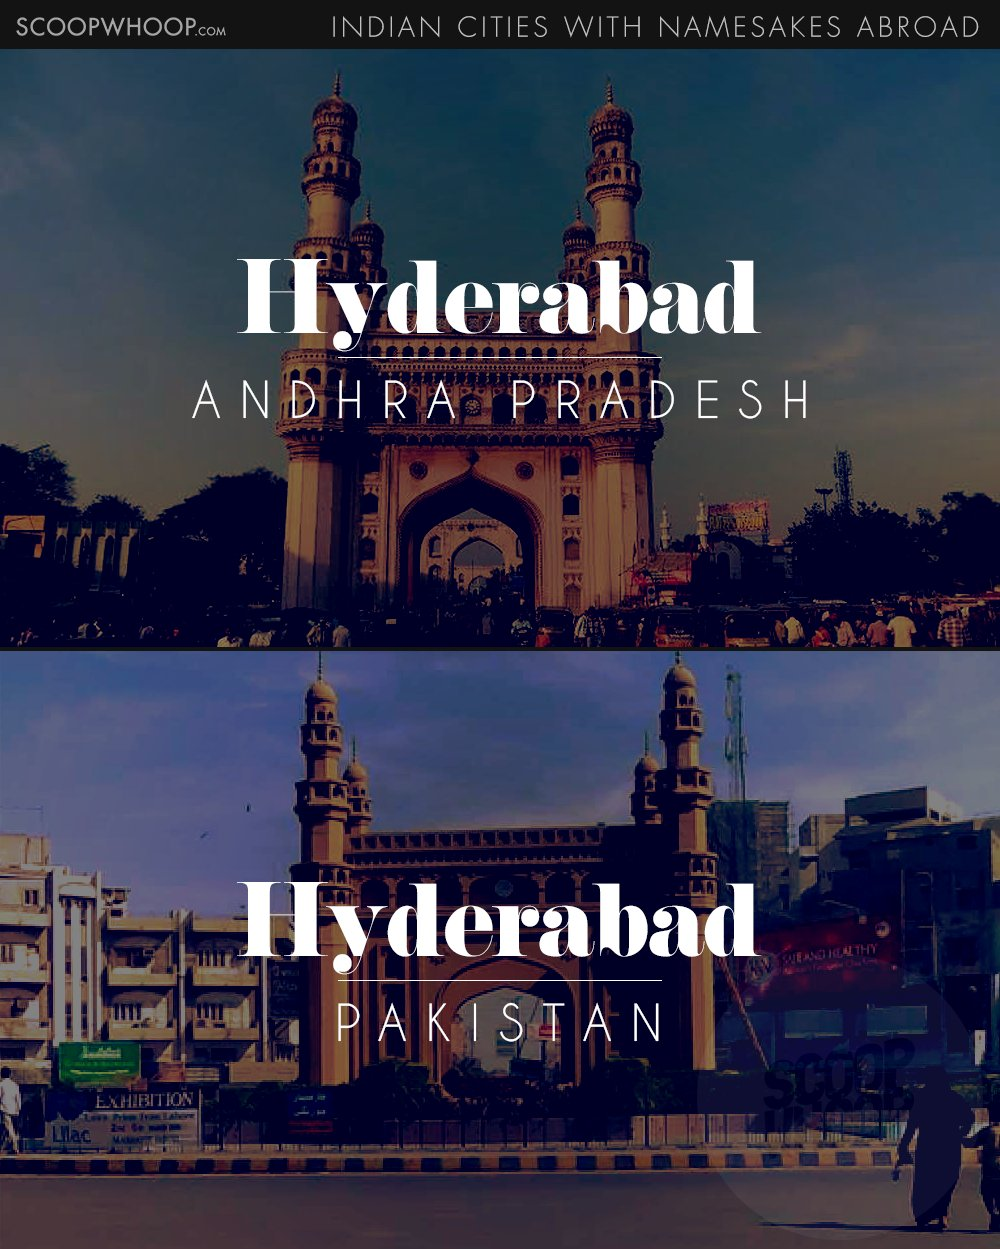 Beautiful Places Names World: 14 Places Around The World That Share Their Names With